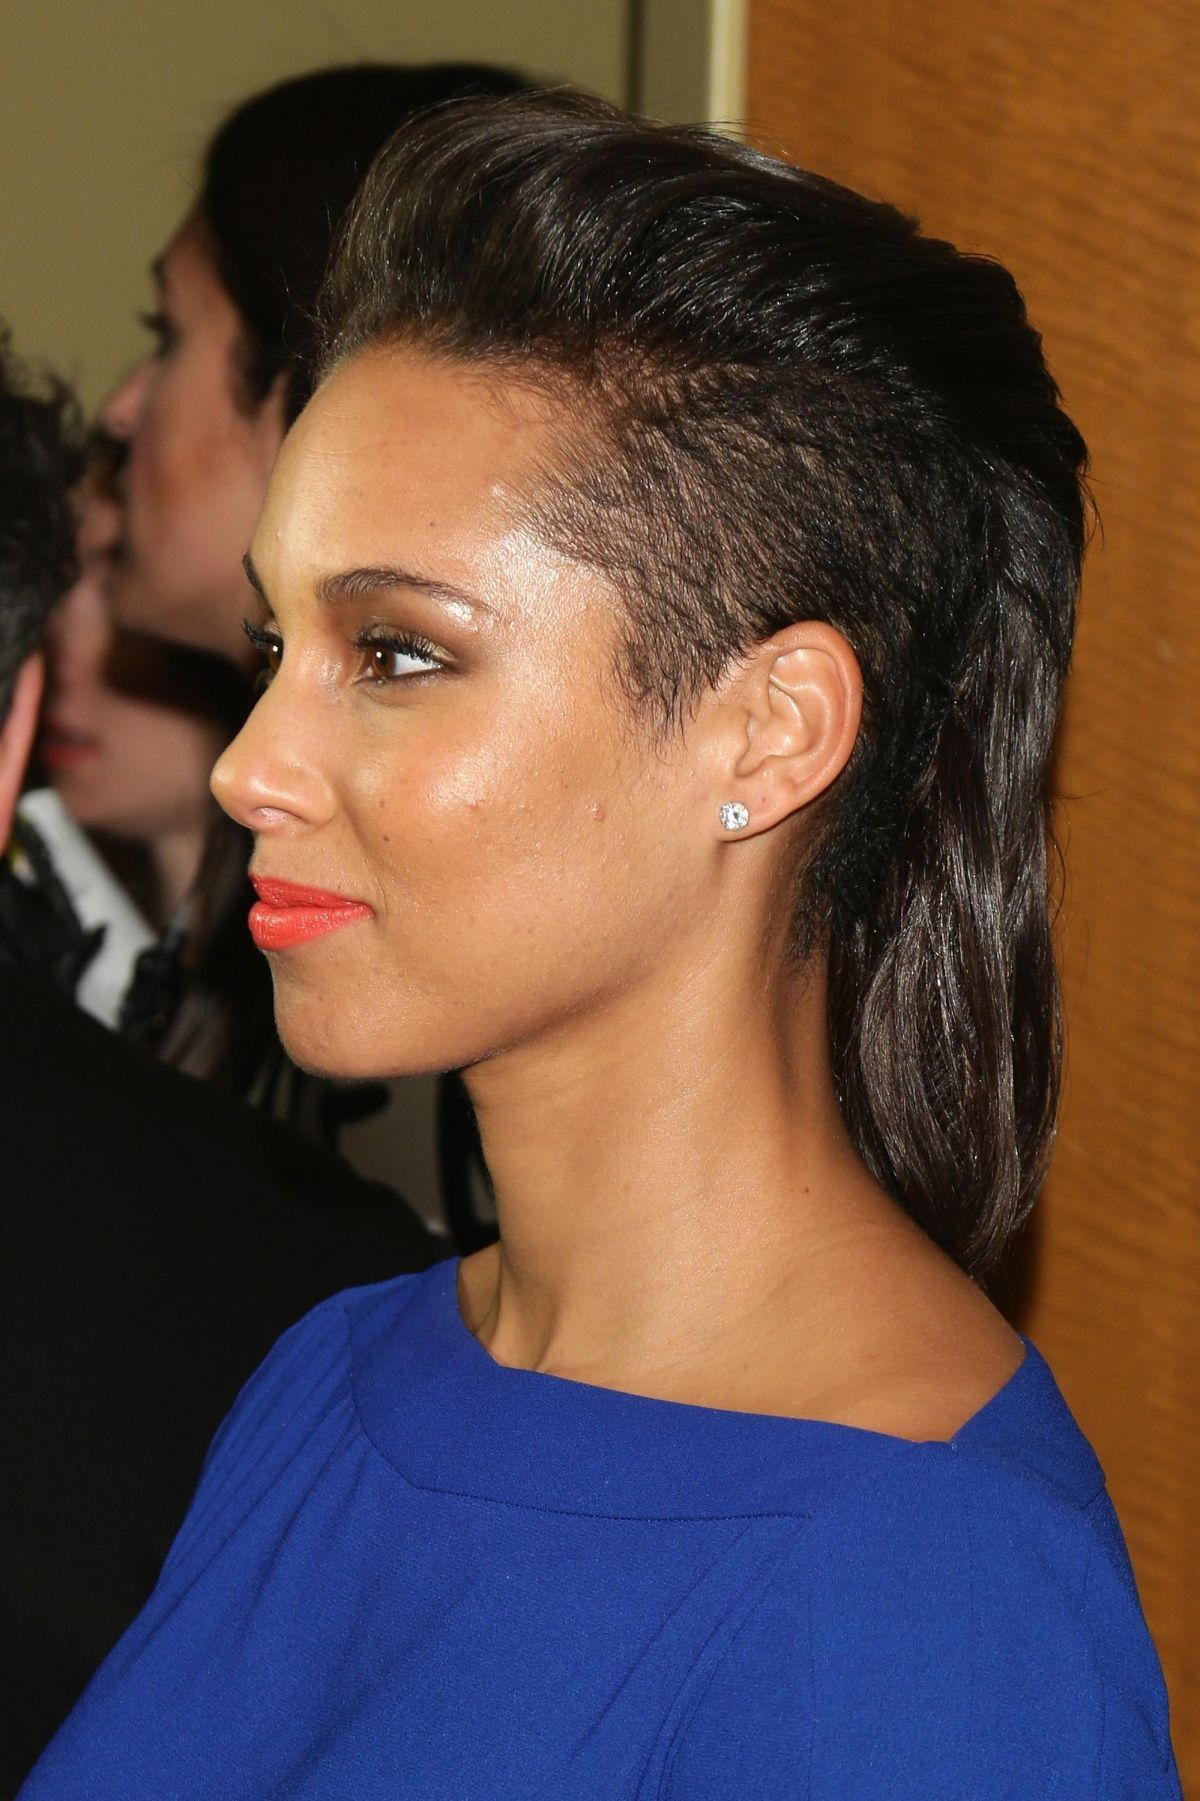 Hair Regarding Most Up To Date Cassie Roll Mohawk Hairstyles (View 14 of 20)